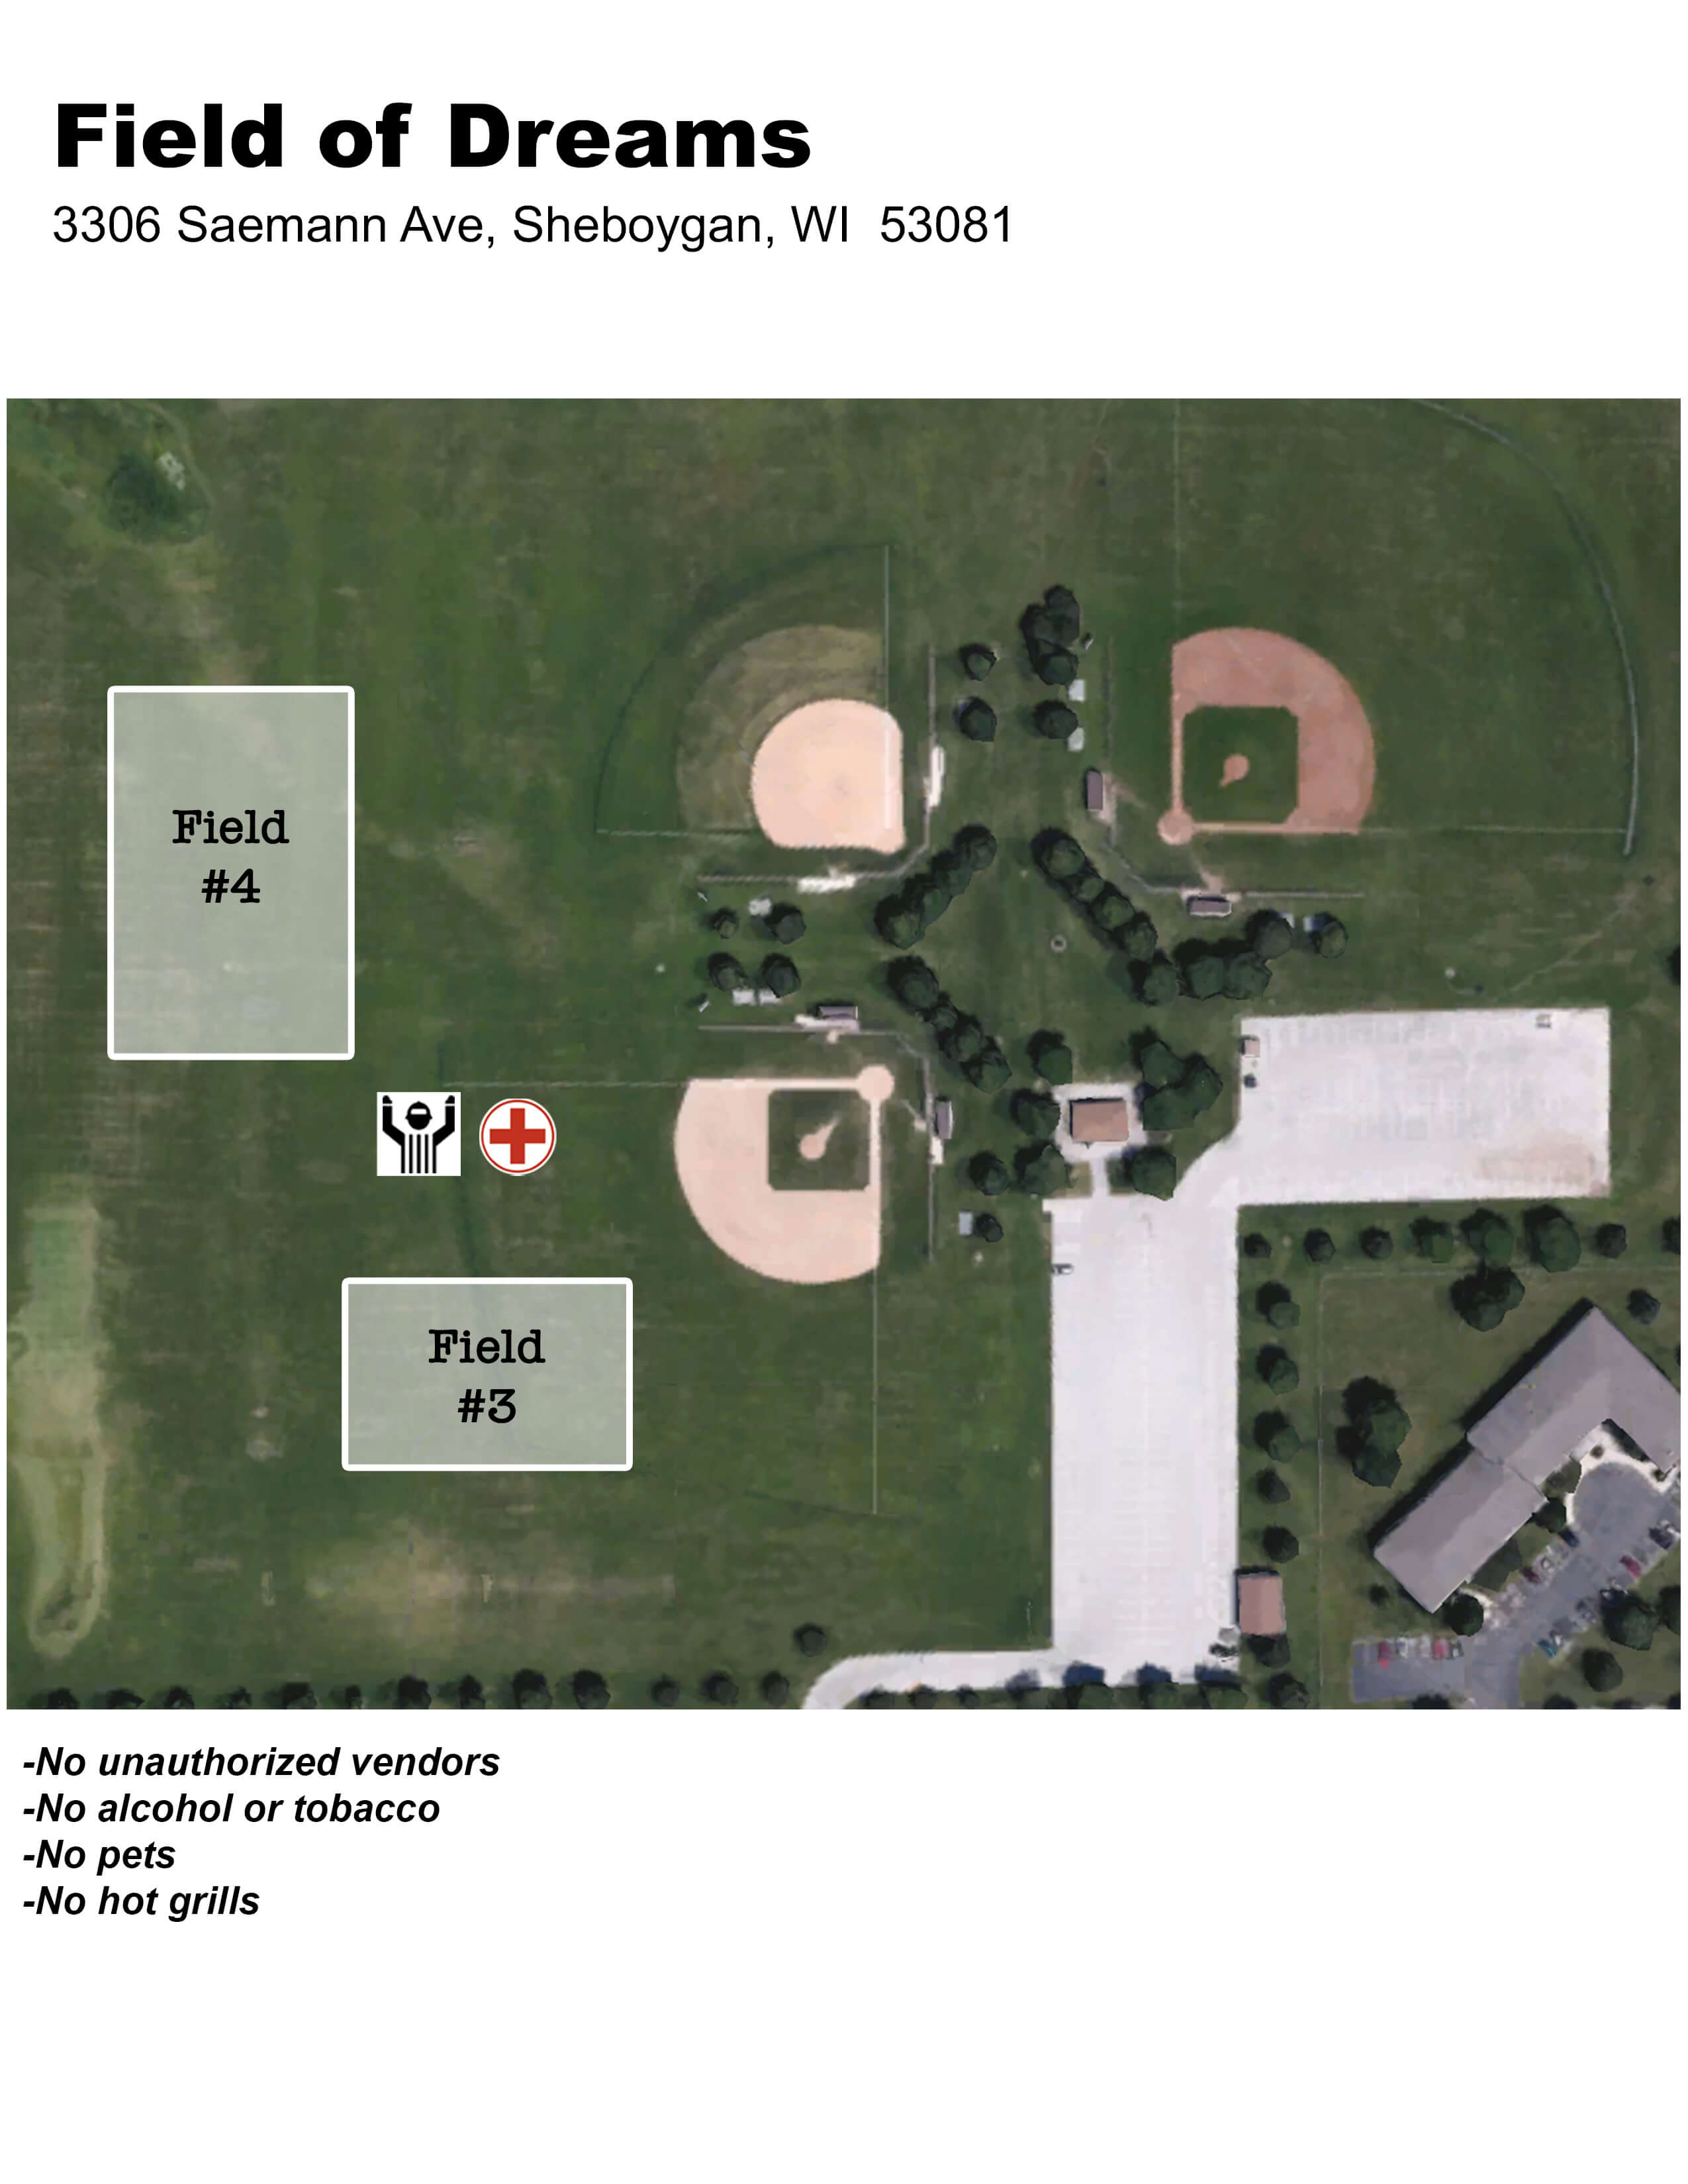 Field of Dreams Field Layout